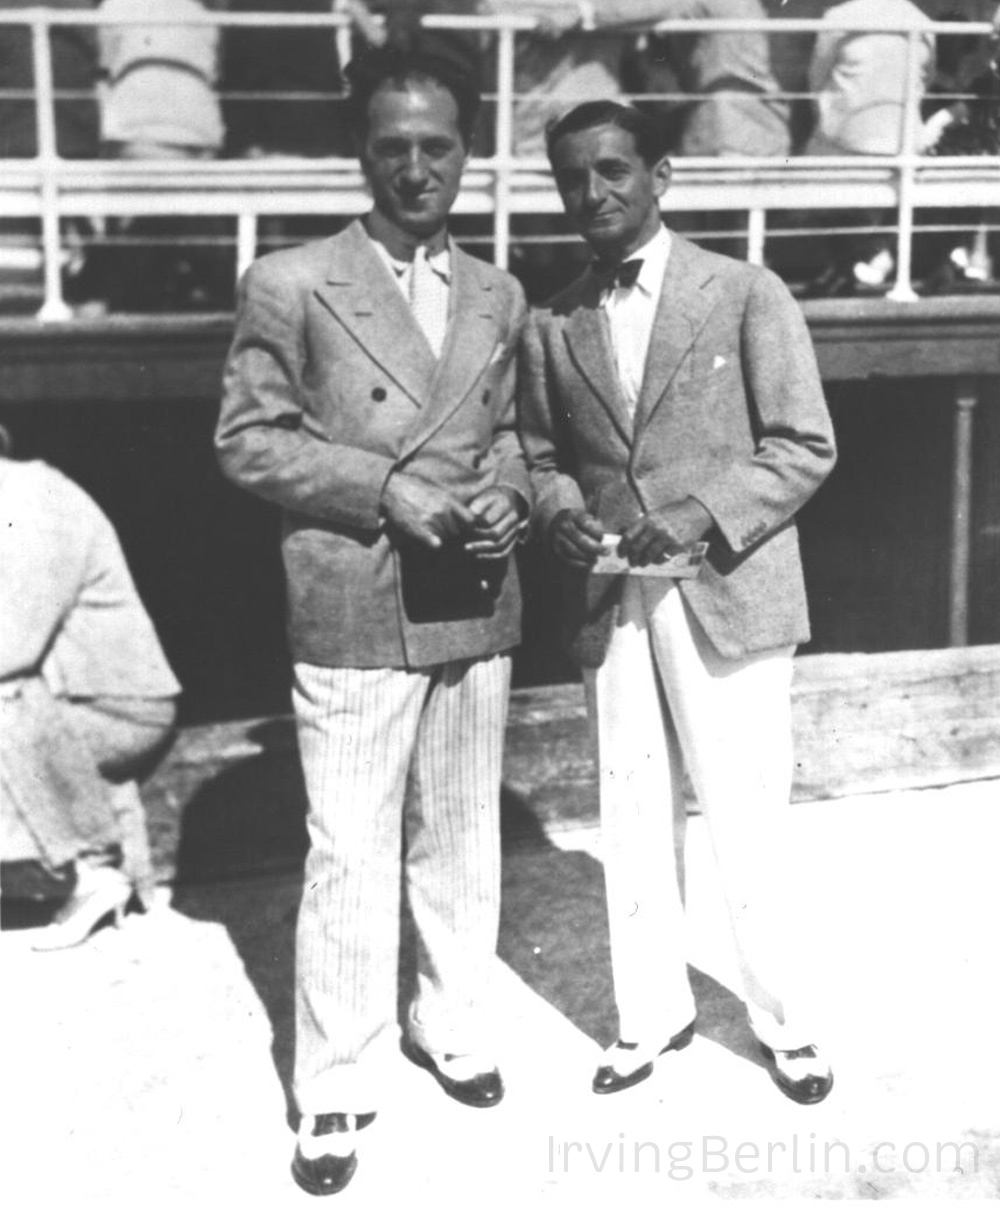 Irving Berlin with George Gershwin